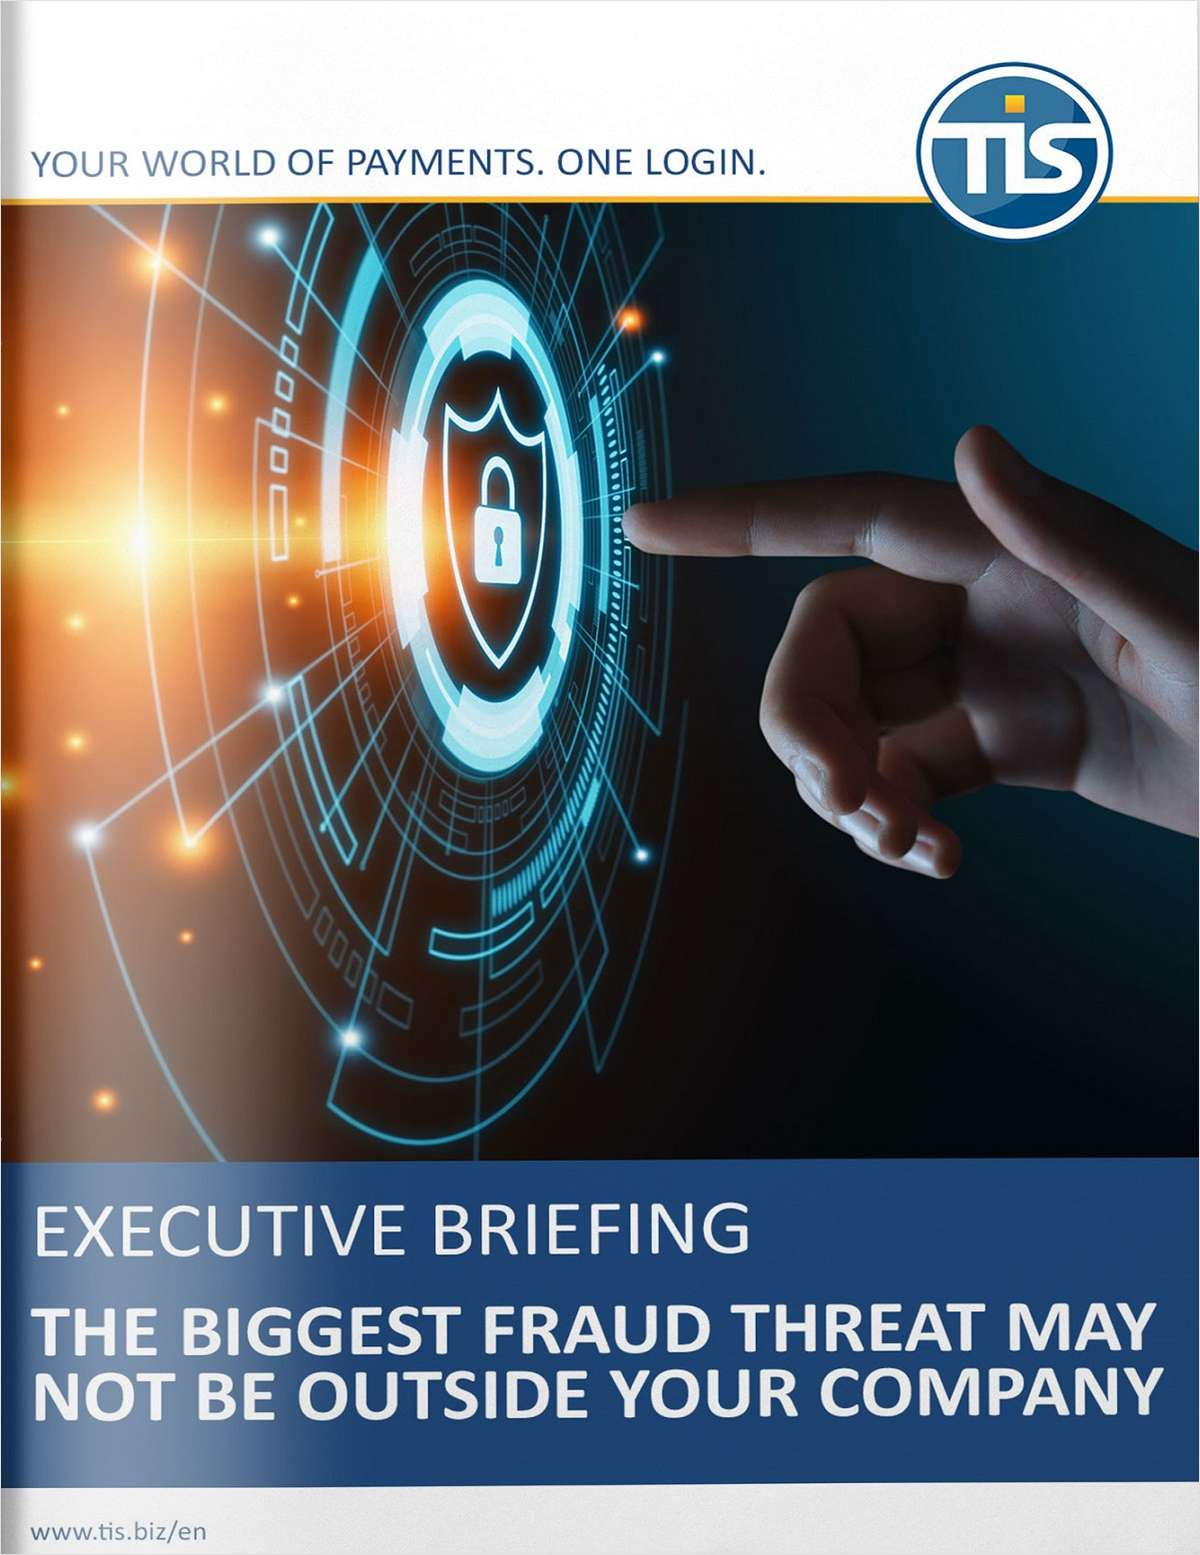 Executive Briefing: The Biggest Fraud Threat May Not Be Outside Your Company